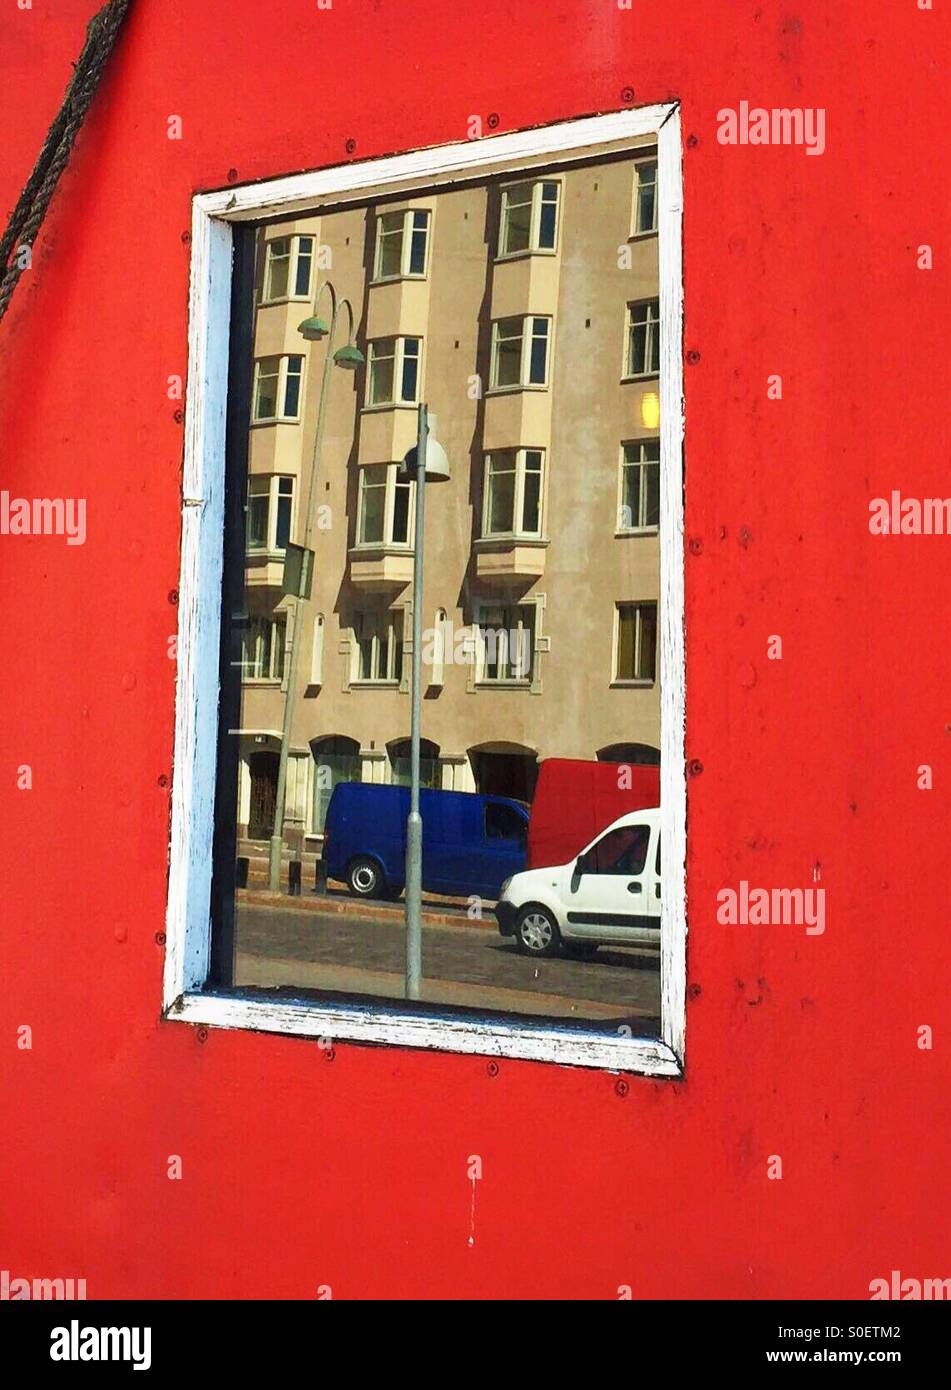 Reflection of a house on a boat window in Helsinki - Stock Image